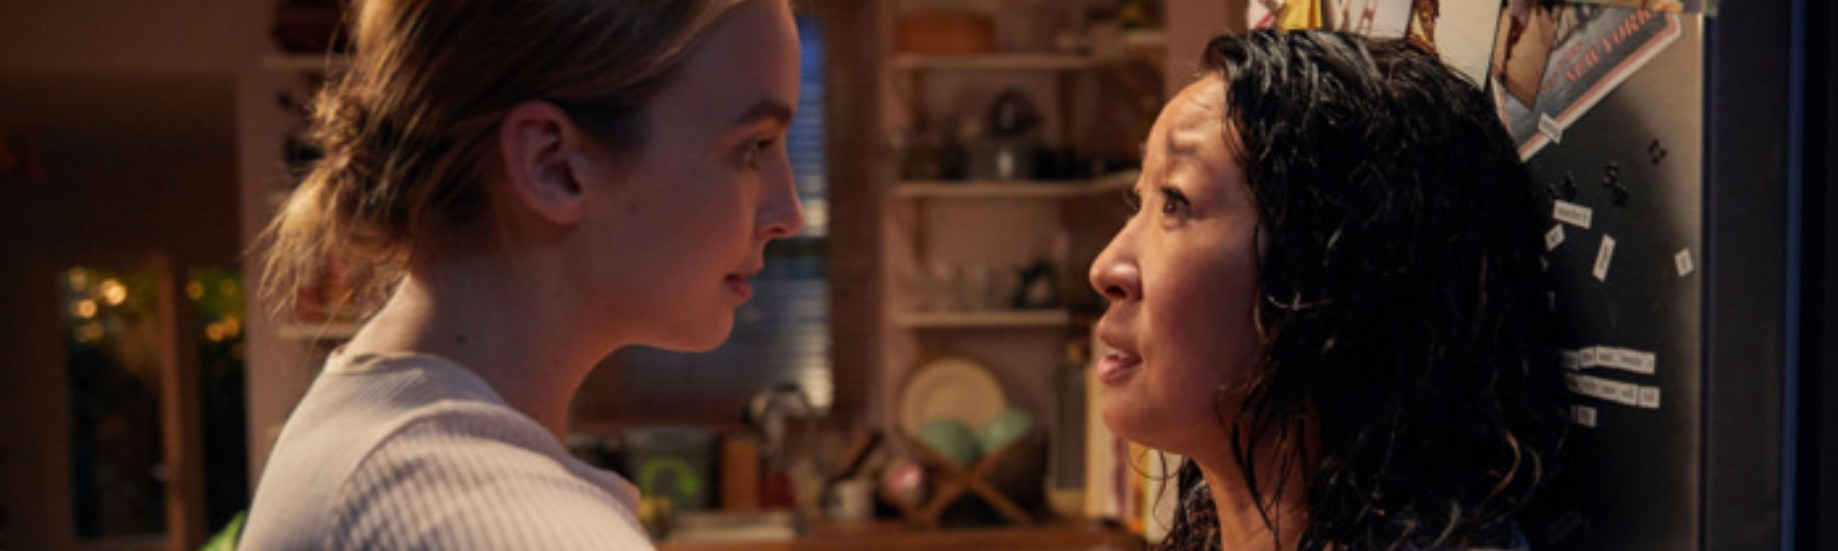 Is Killing Eve's Villanelle an Accurate Female Psychopath?